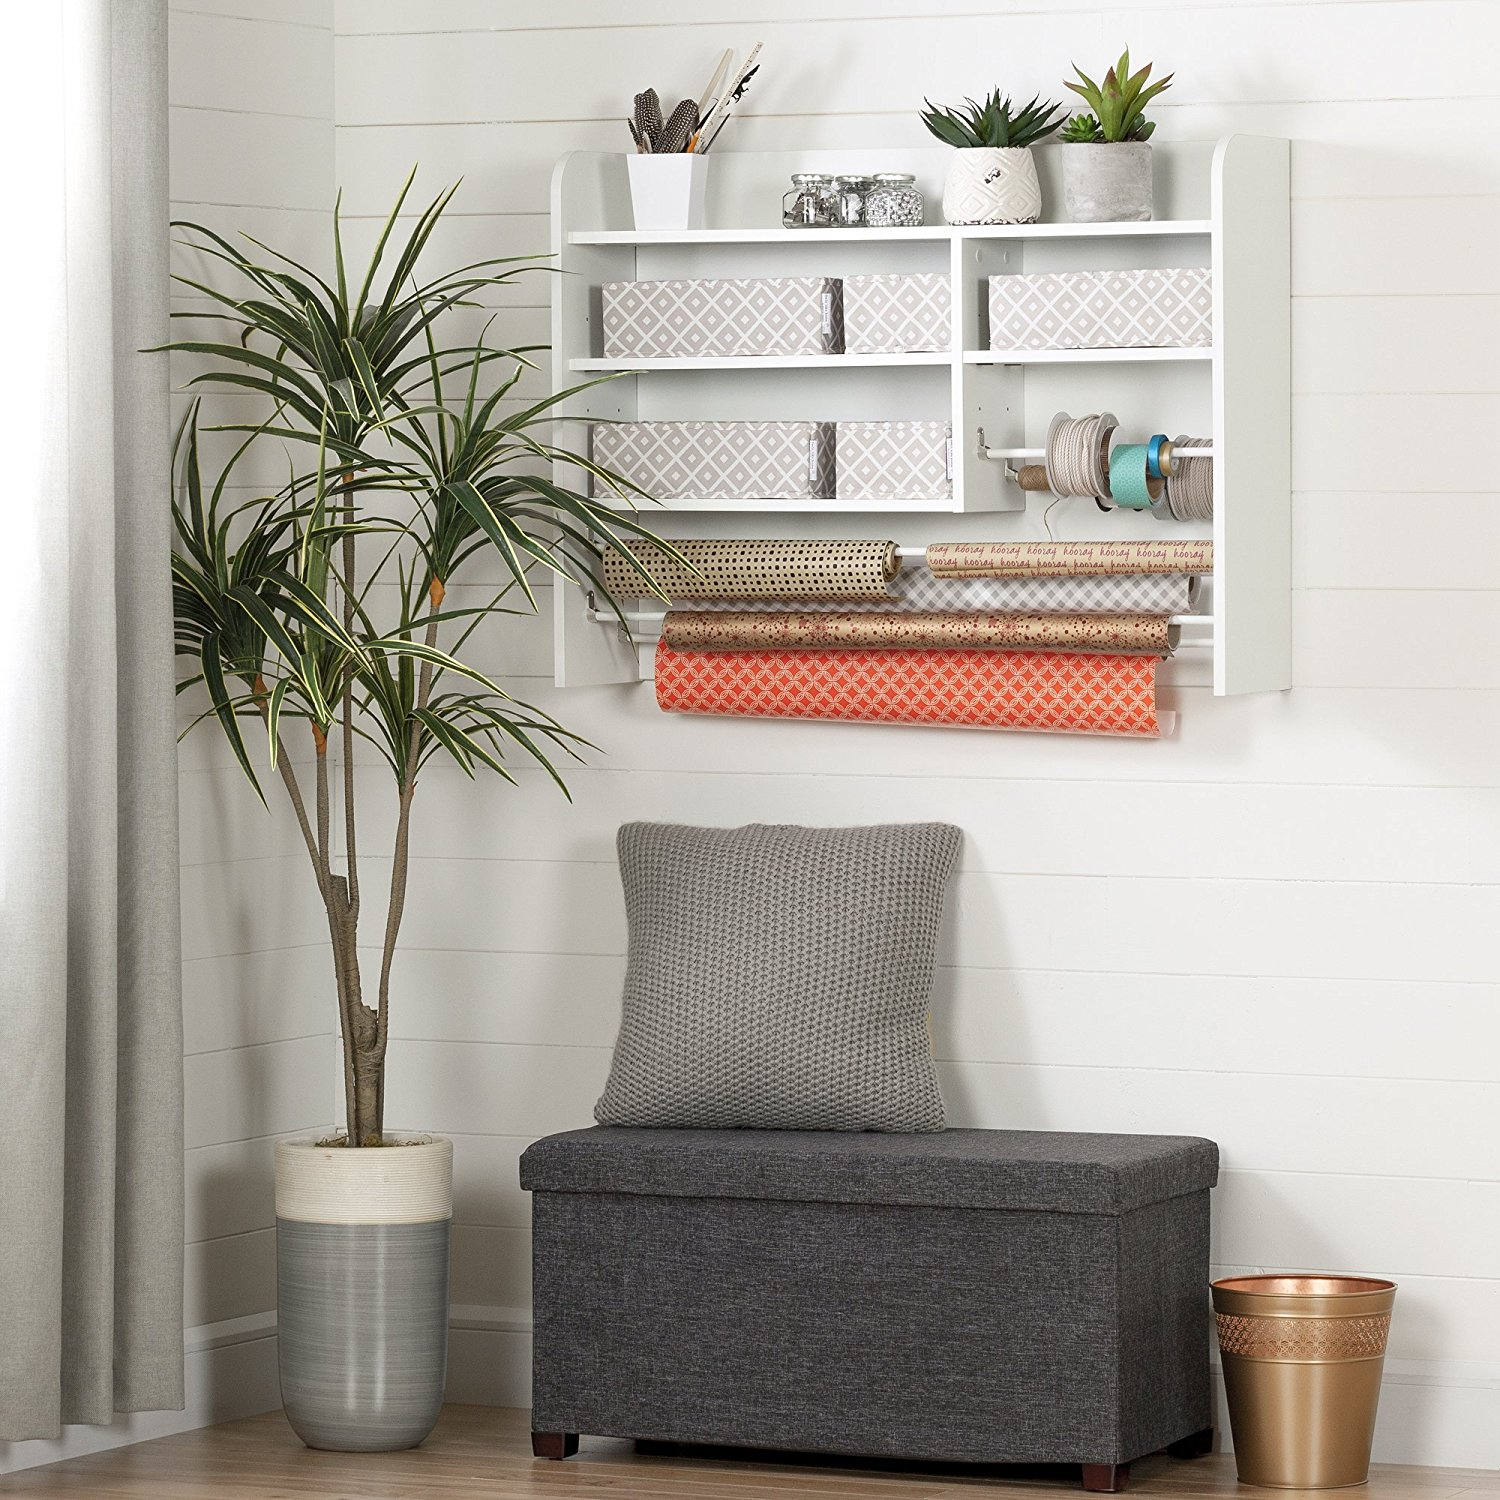 Great wall organizer for wrapping paper or crafts.